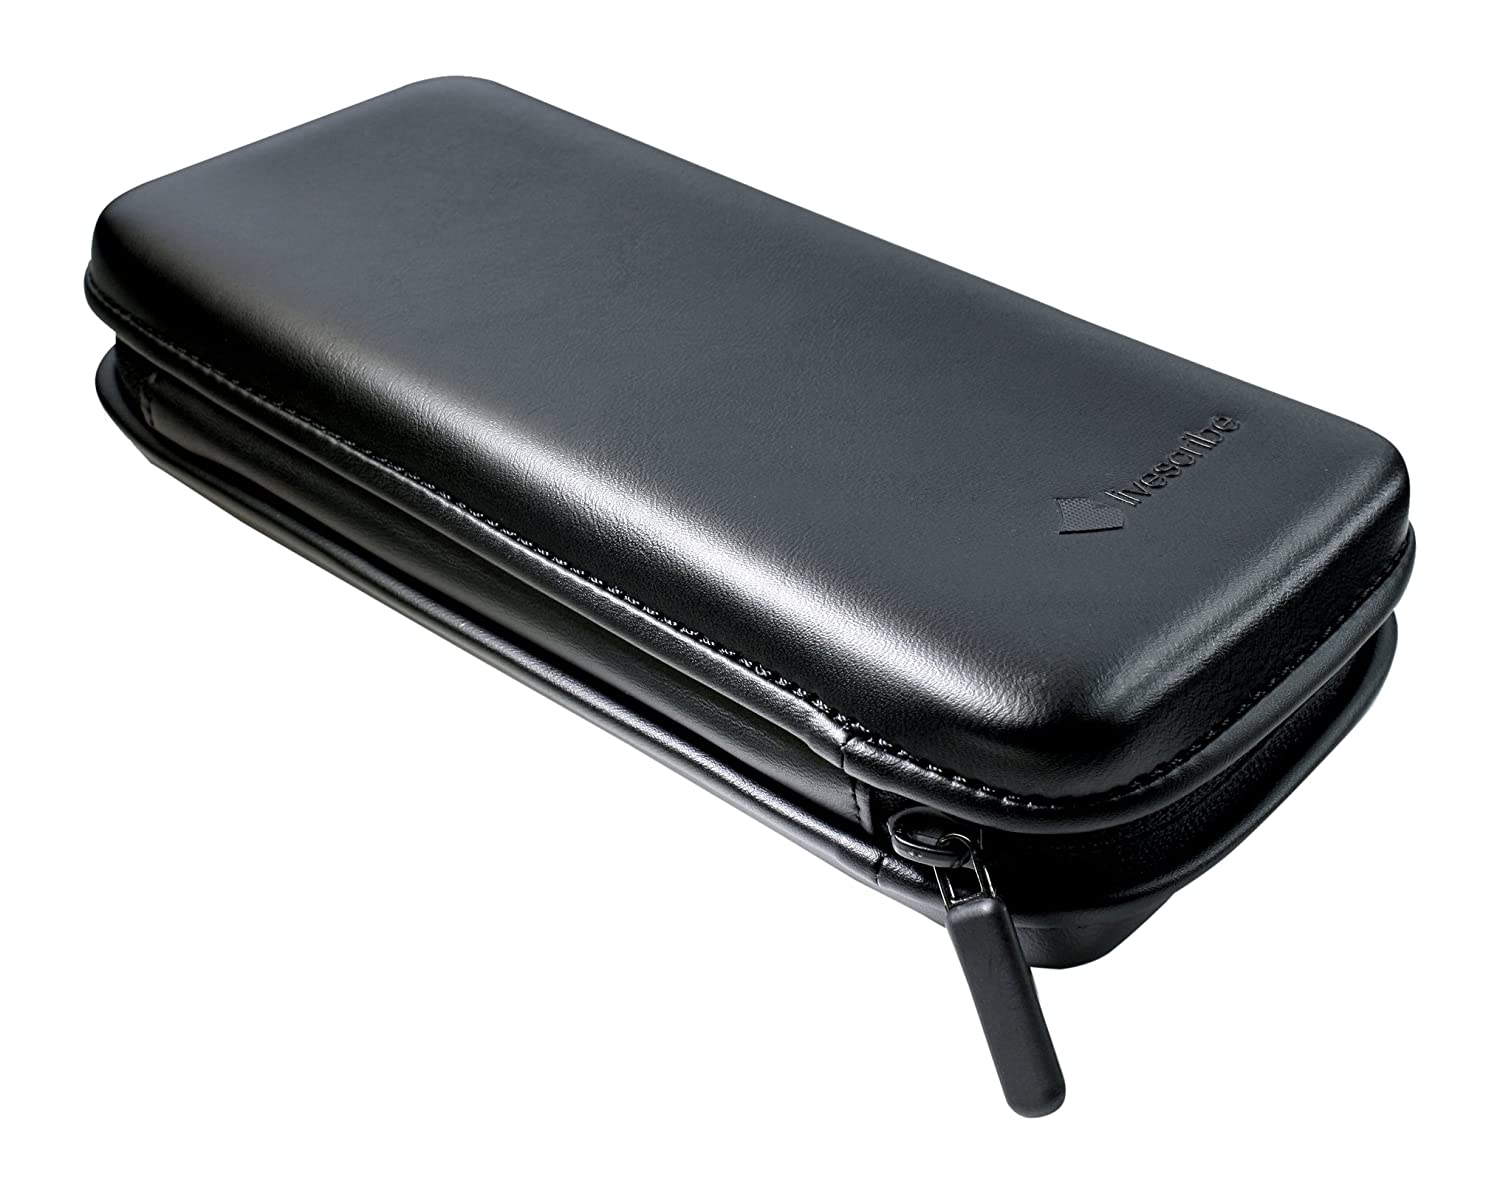 Livescribe Deluxe Carrying Case AAA-00015-11